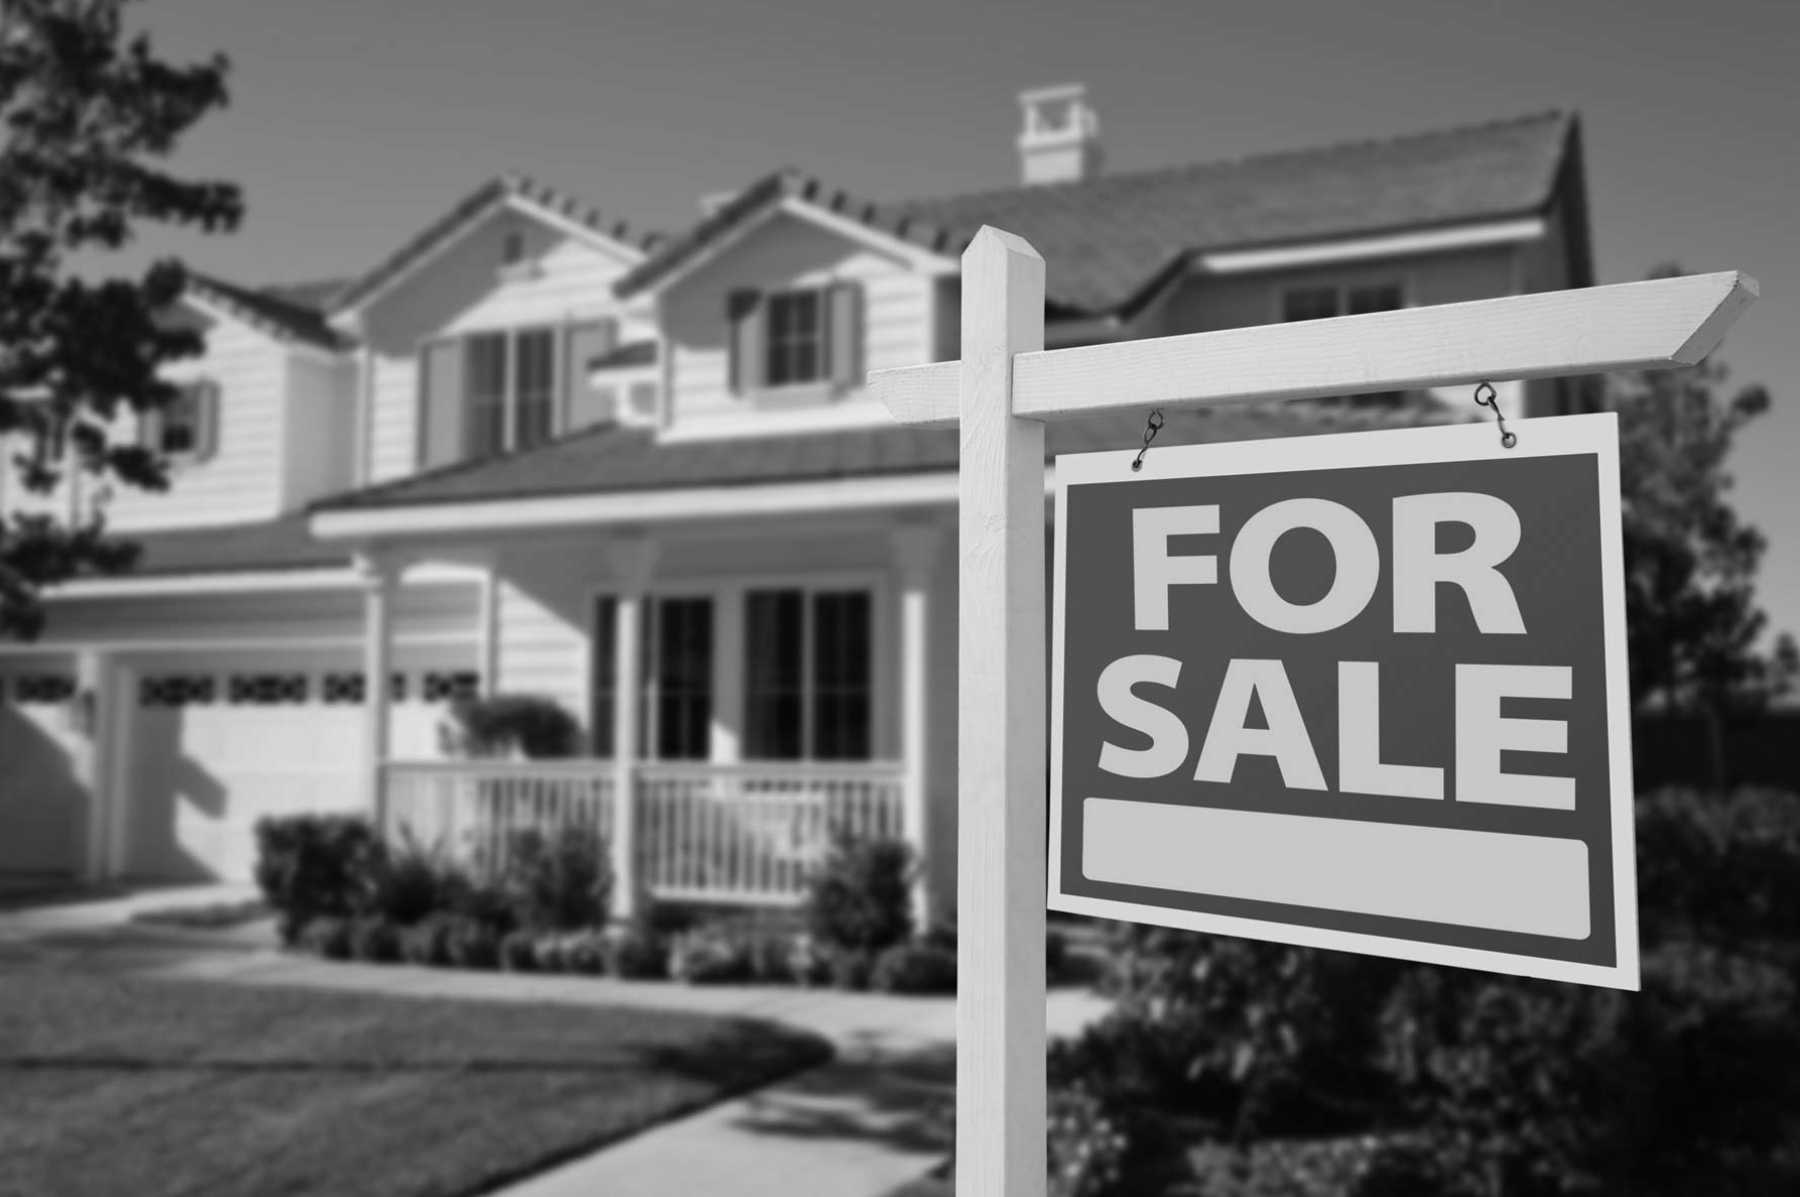 bigstock-Home-For-Sale-Real-Estate-Sign-11943983